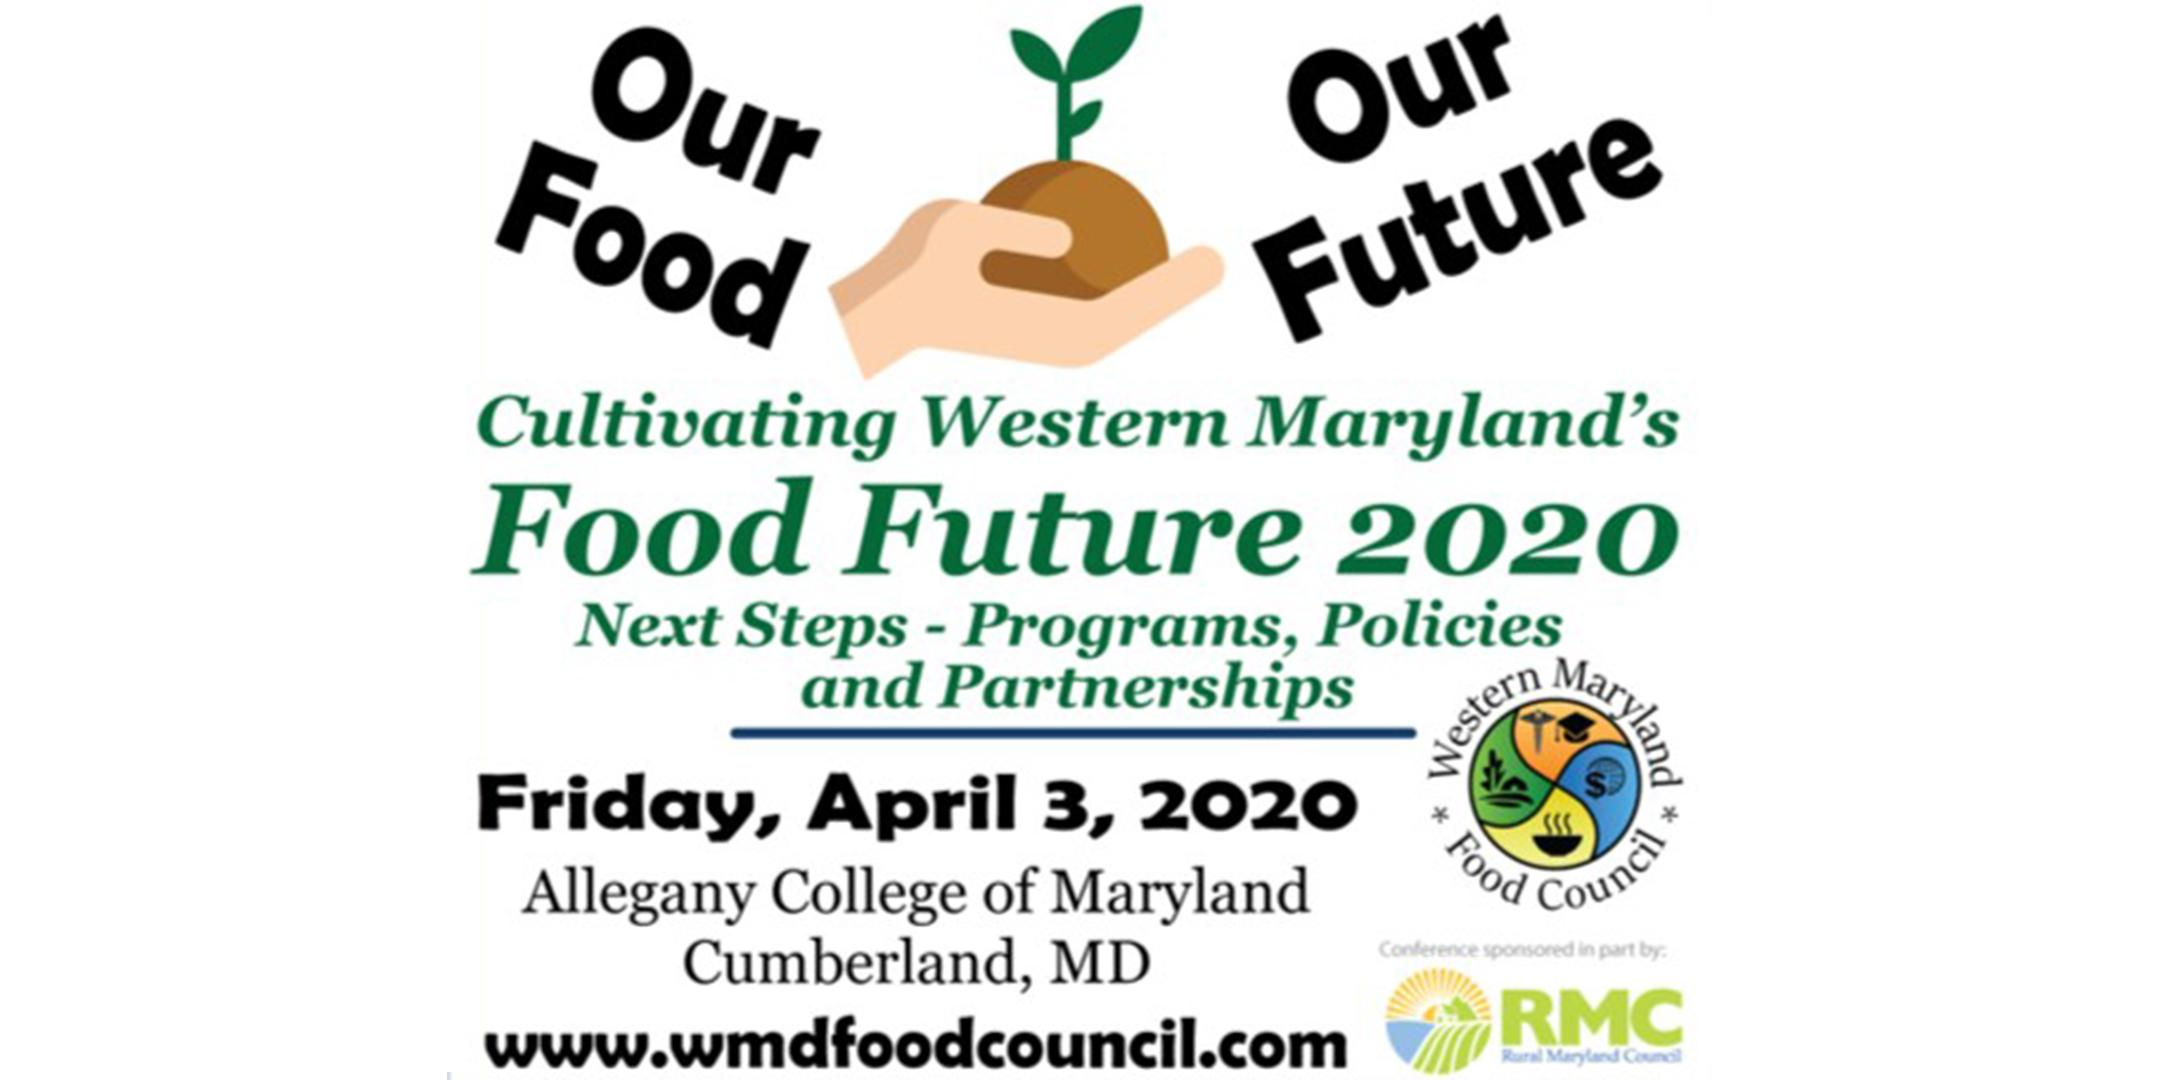 Our Future: Cultivating Western Maryland's Food Future 2020 Conference